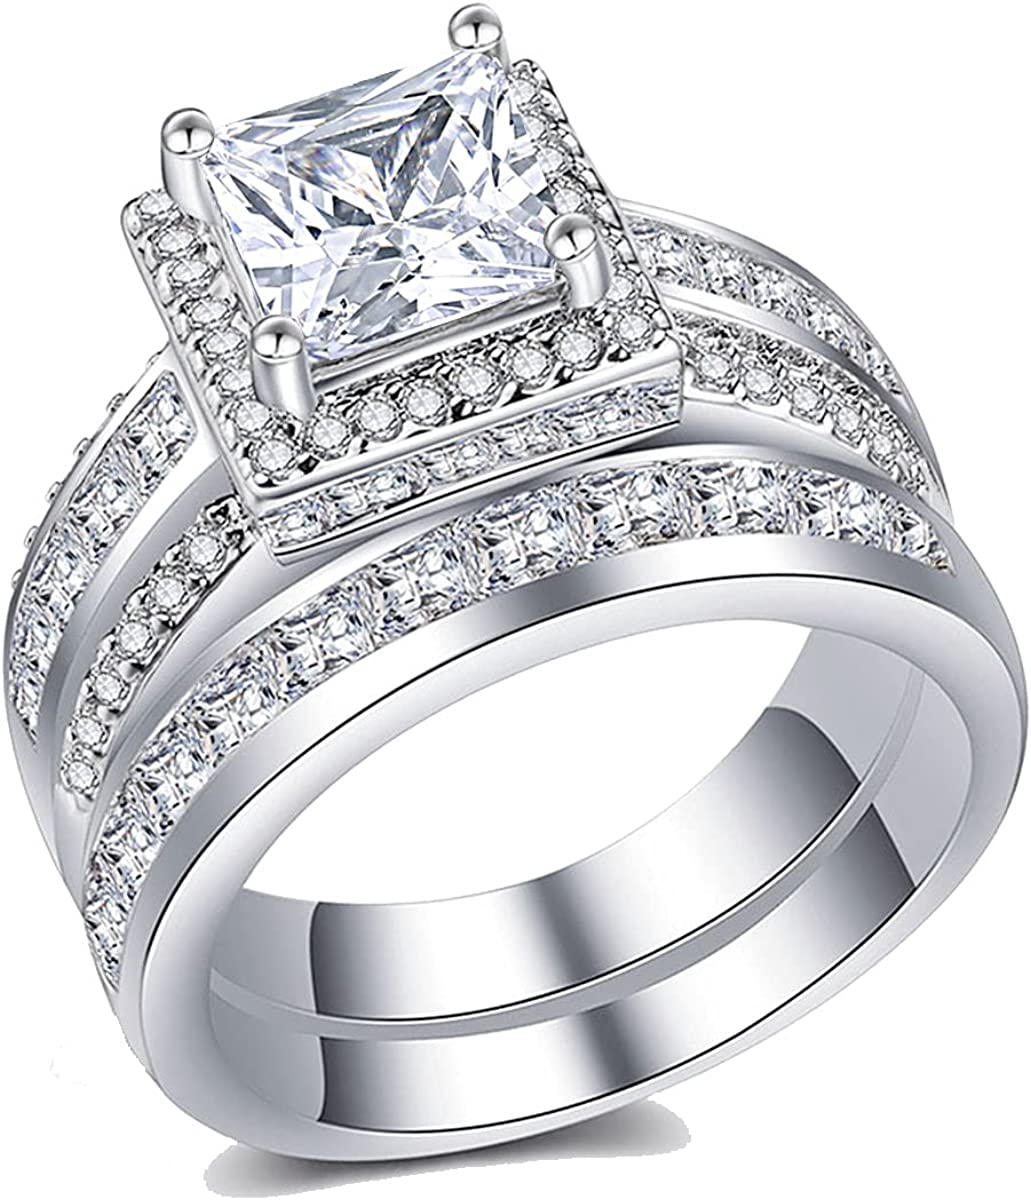 Ahloe Jewelry 3Ct Wedding Rings for Women Princess Engagement Ring Set Bands 18k White Gold Plated Halo Cz Size 6-10